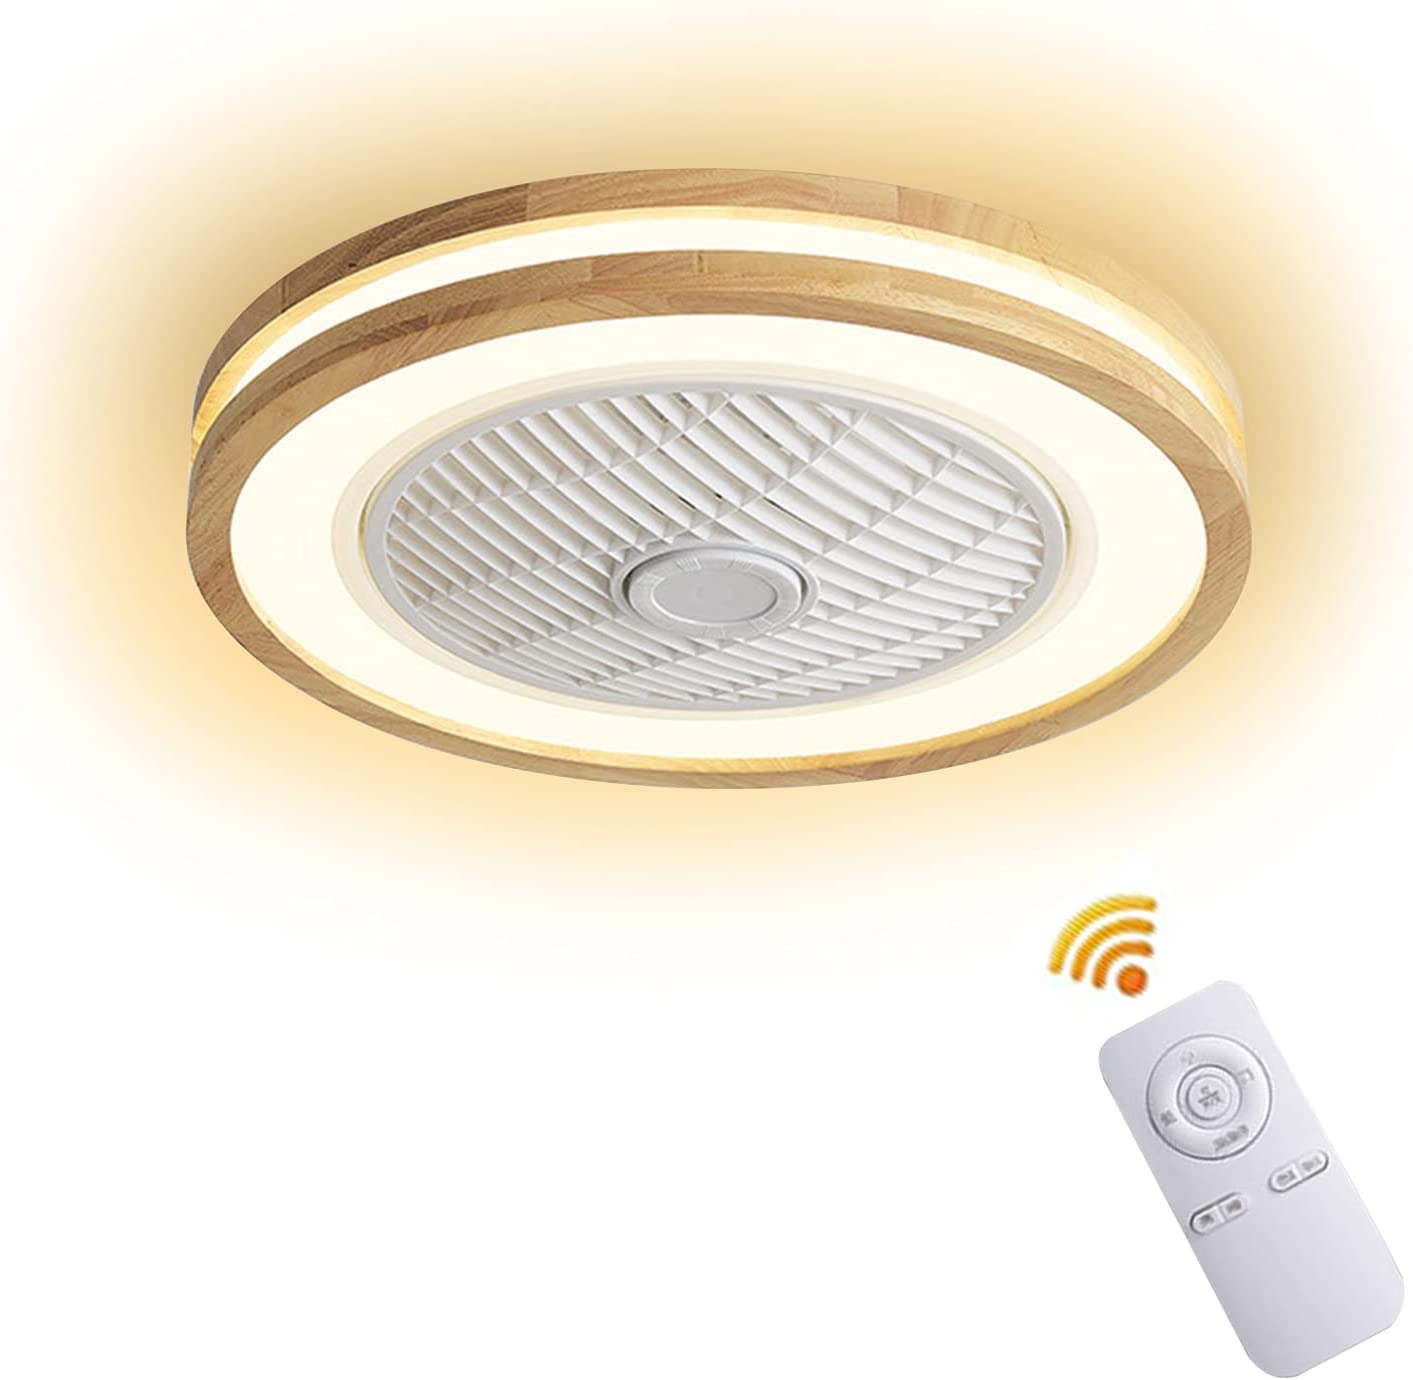 Wood Ceiling Max 75% OFF Fan with Lights Li Remote OFFicial shop Control Dimmable